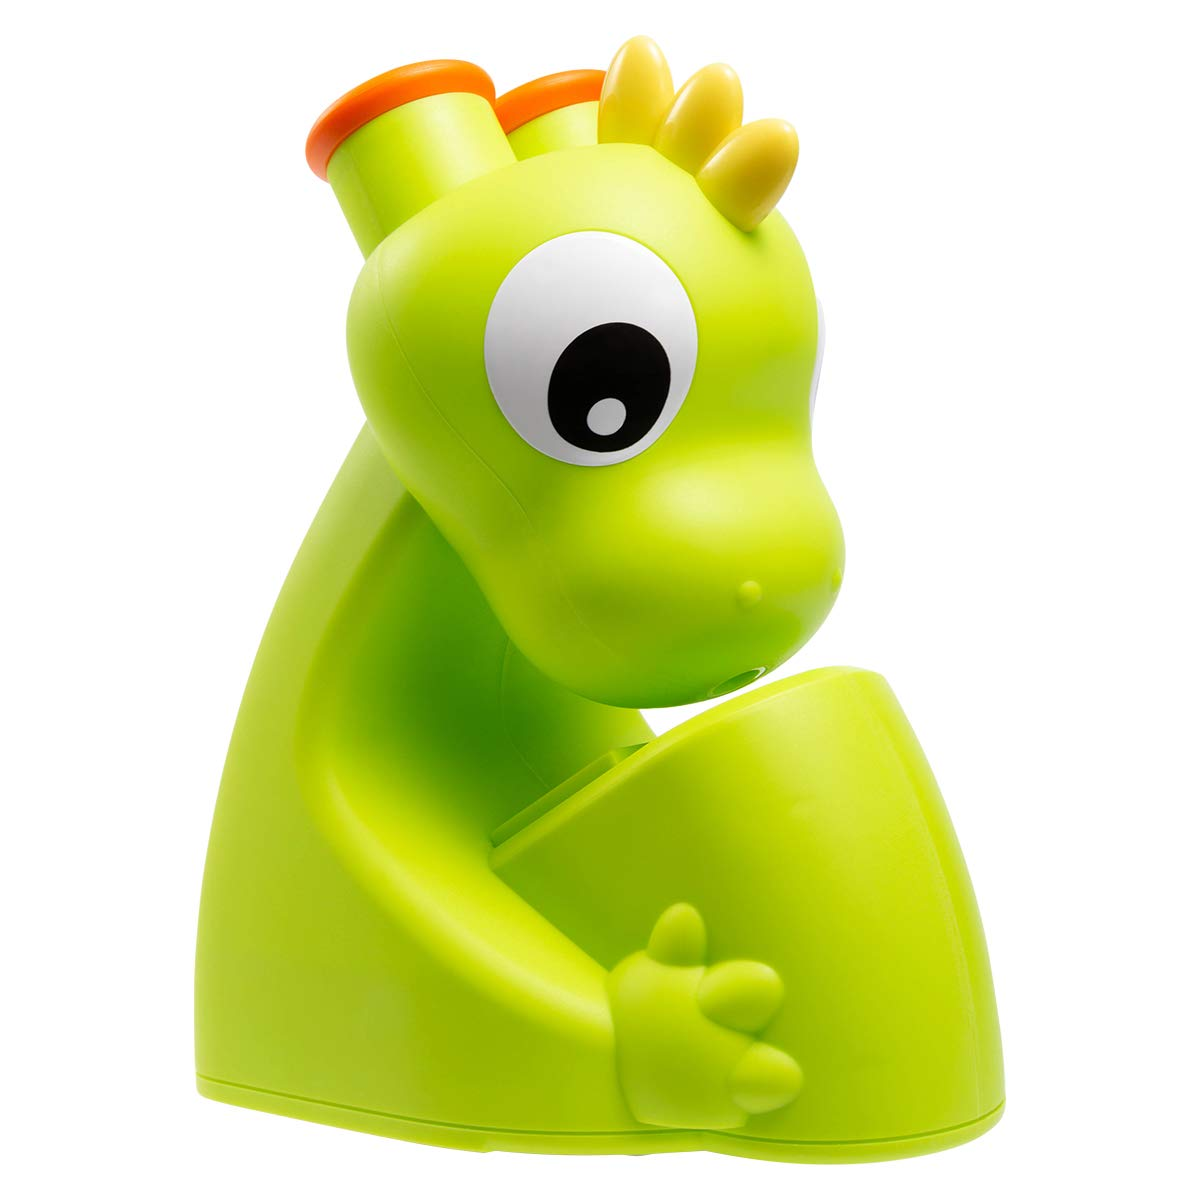 BEJOY Microscope Science Kit for Kids Dinosaur Microscope with Microscope Slides Green 9 Inches (3 AAA Batteries Required) by BEJOY